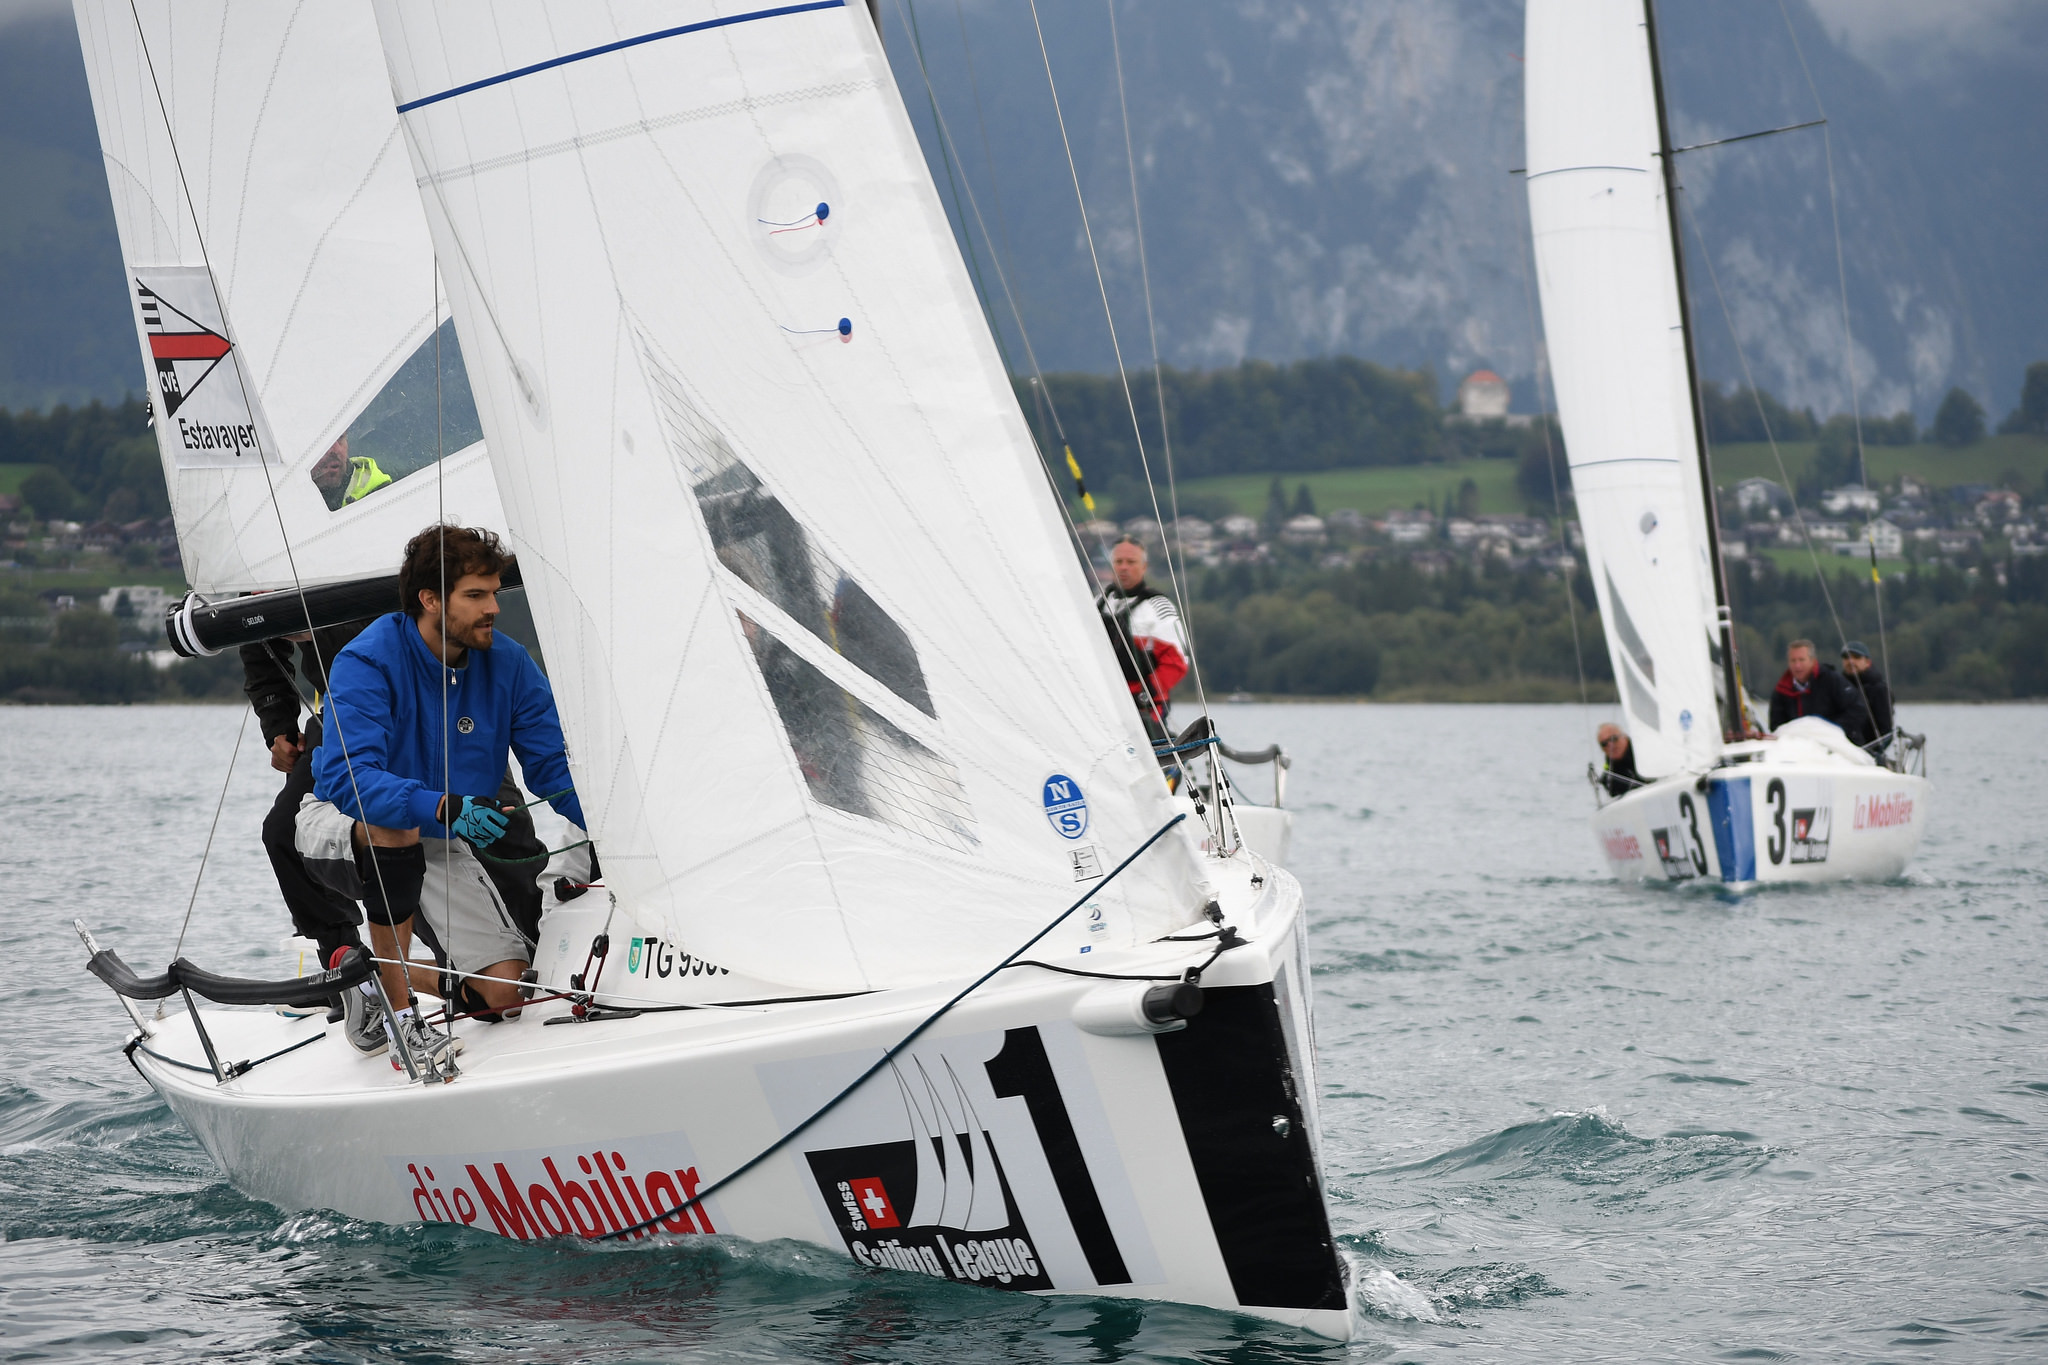 2017 Swisssailingleague 09